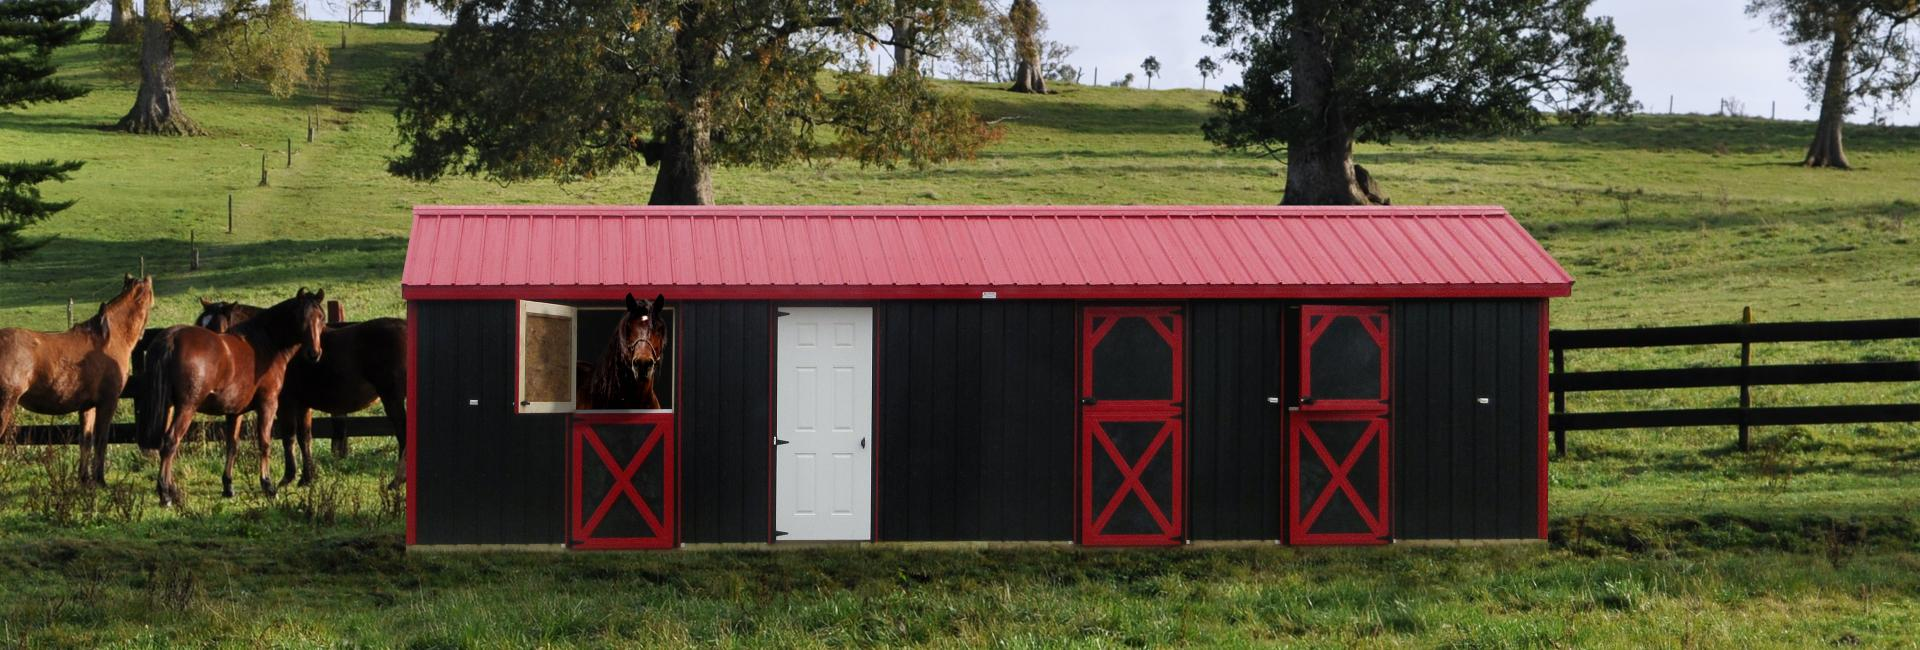 Black and red horse barn with horses